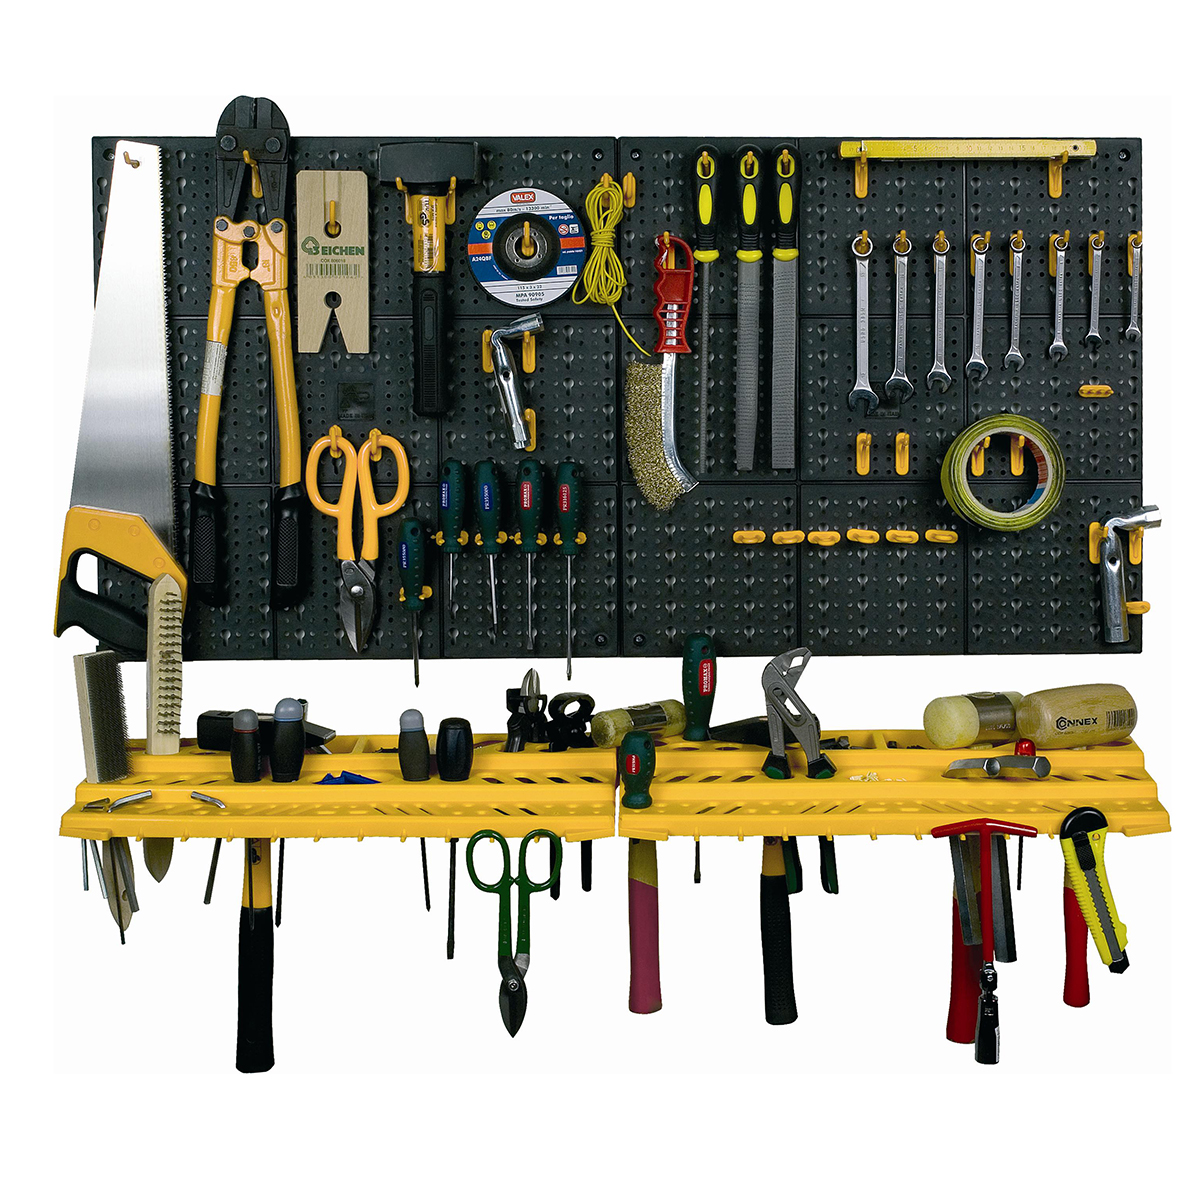 Garage Wall Tool Rack Storage Kit Tools Organizer Home Shelves Inc 50 Hooks!